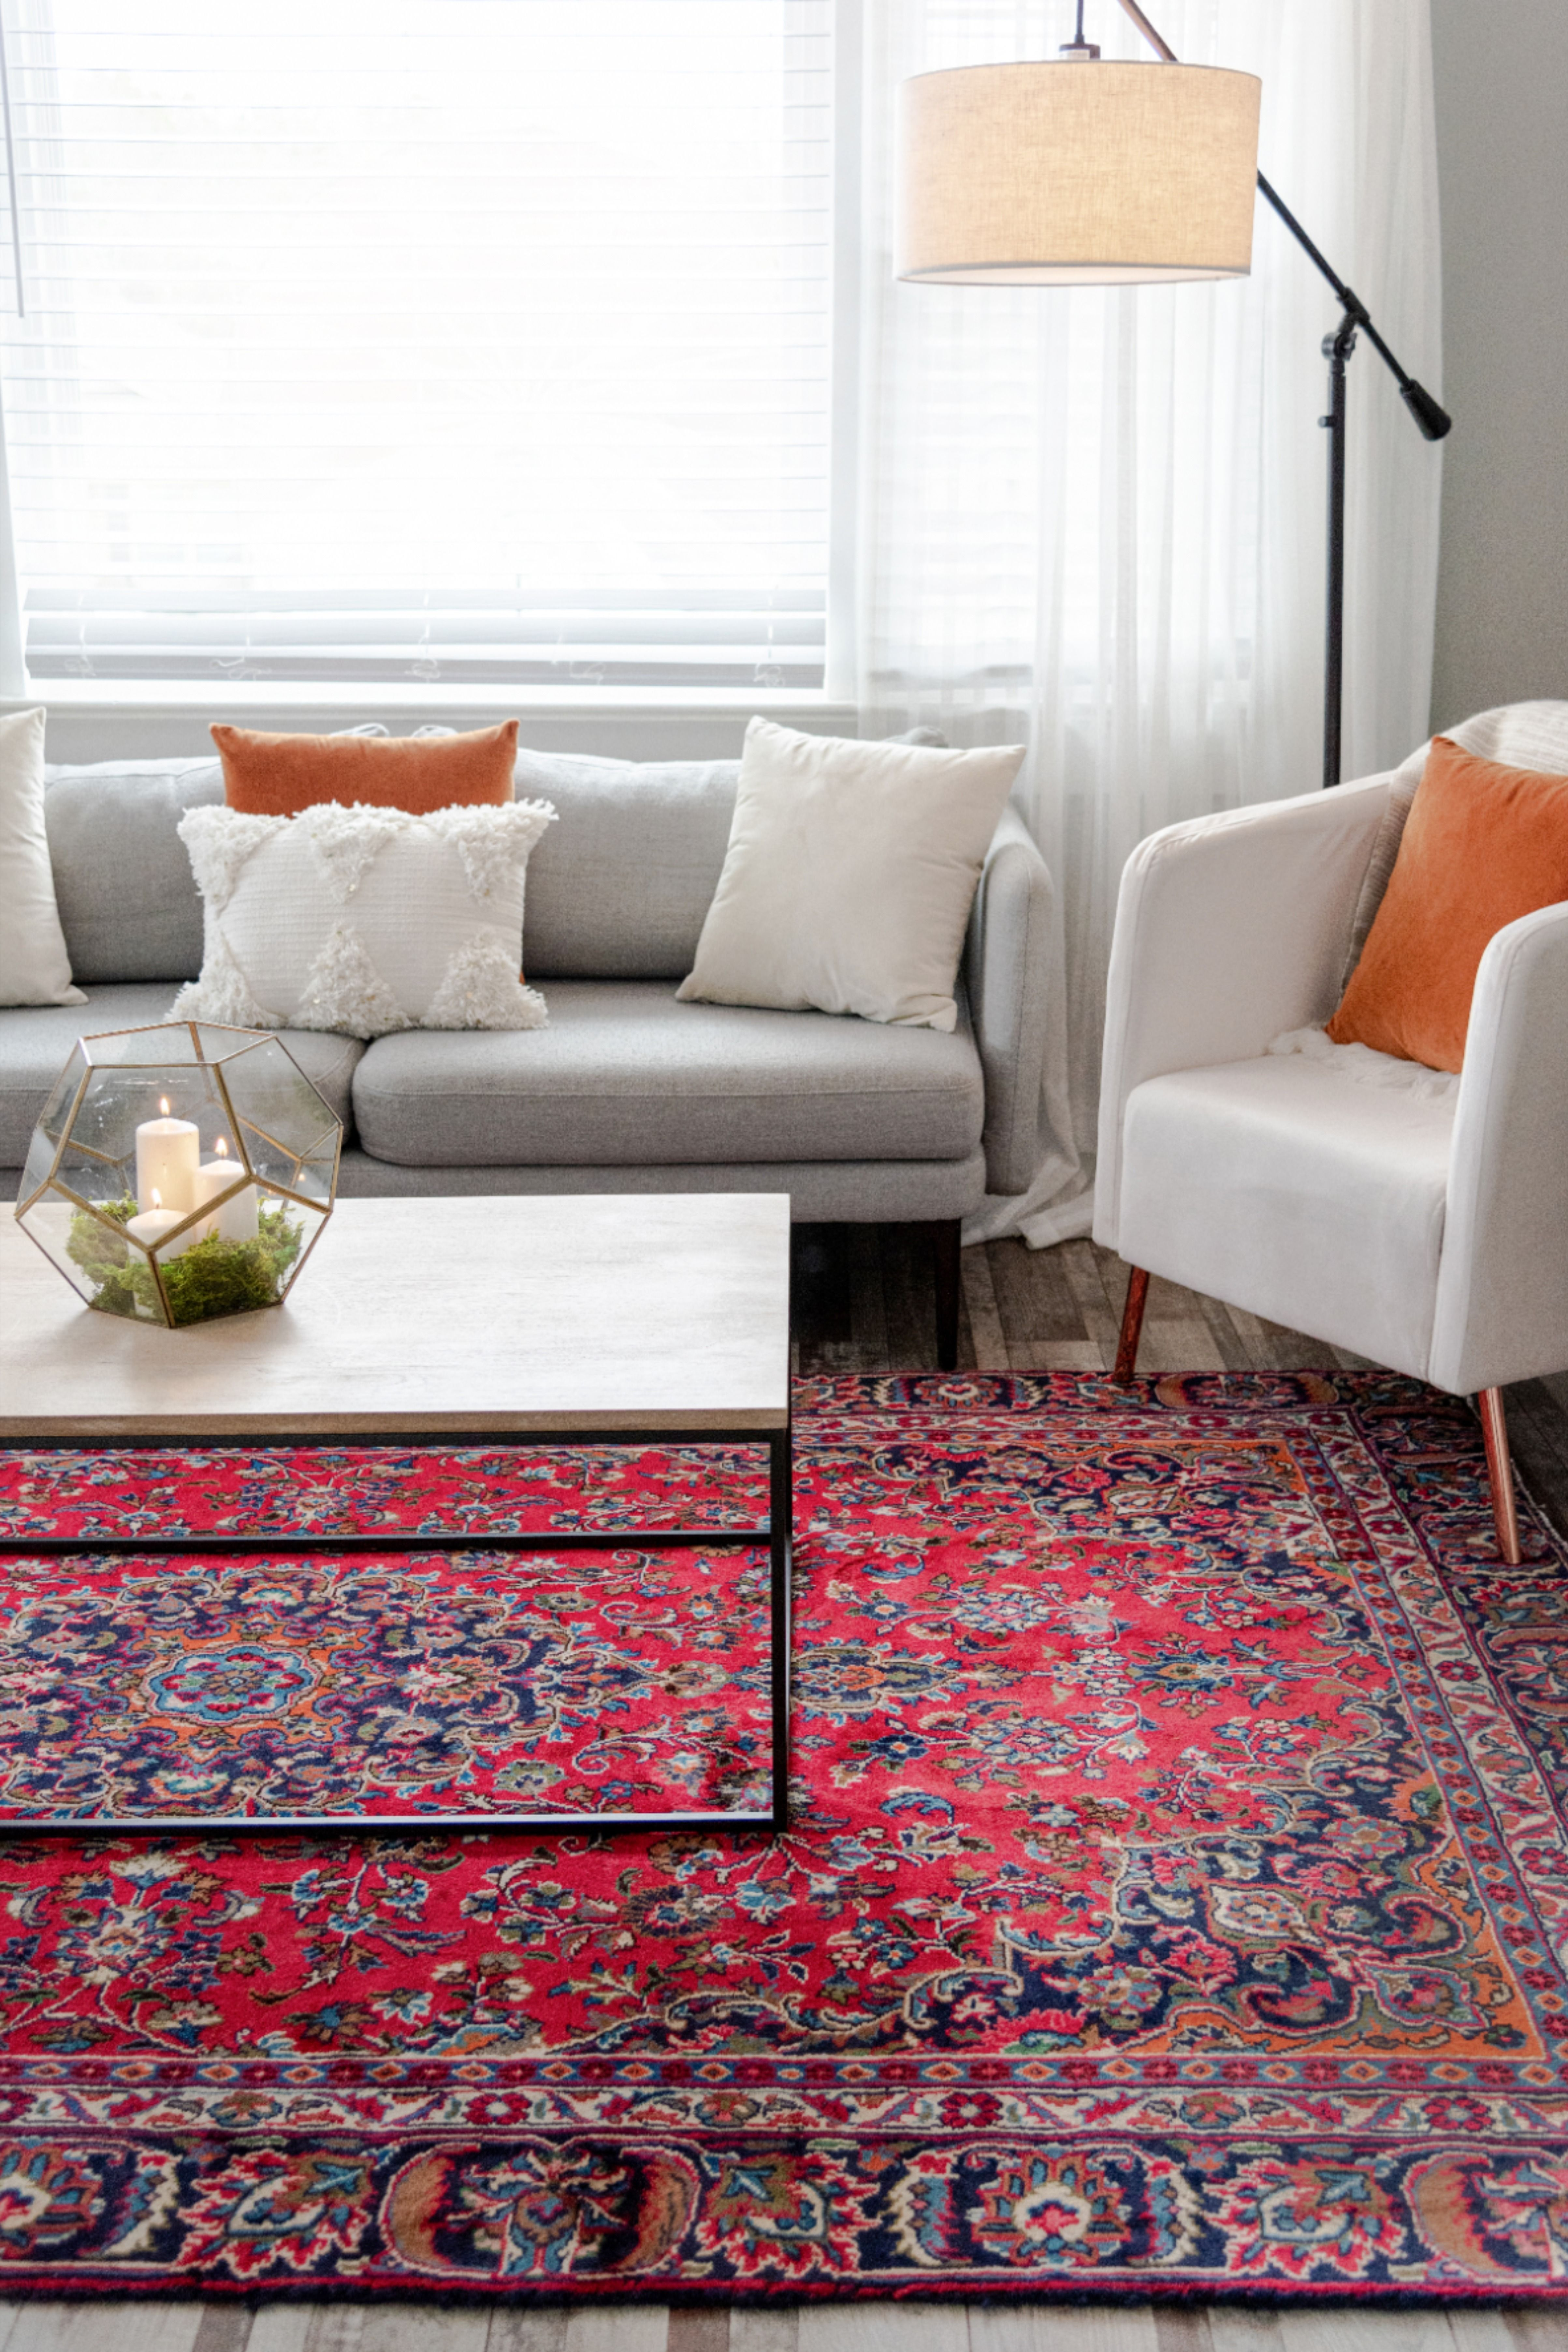 Shop Our Mashad Persian Collection To Find The Perfect Rug For Your Living Room Livingr In 2020 Persian Carpet Living Room Persian Rug Living Room Living Room Carpet